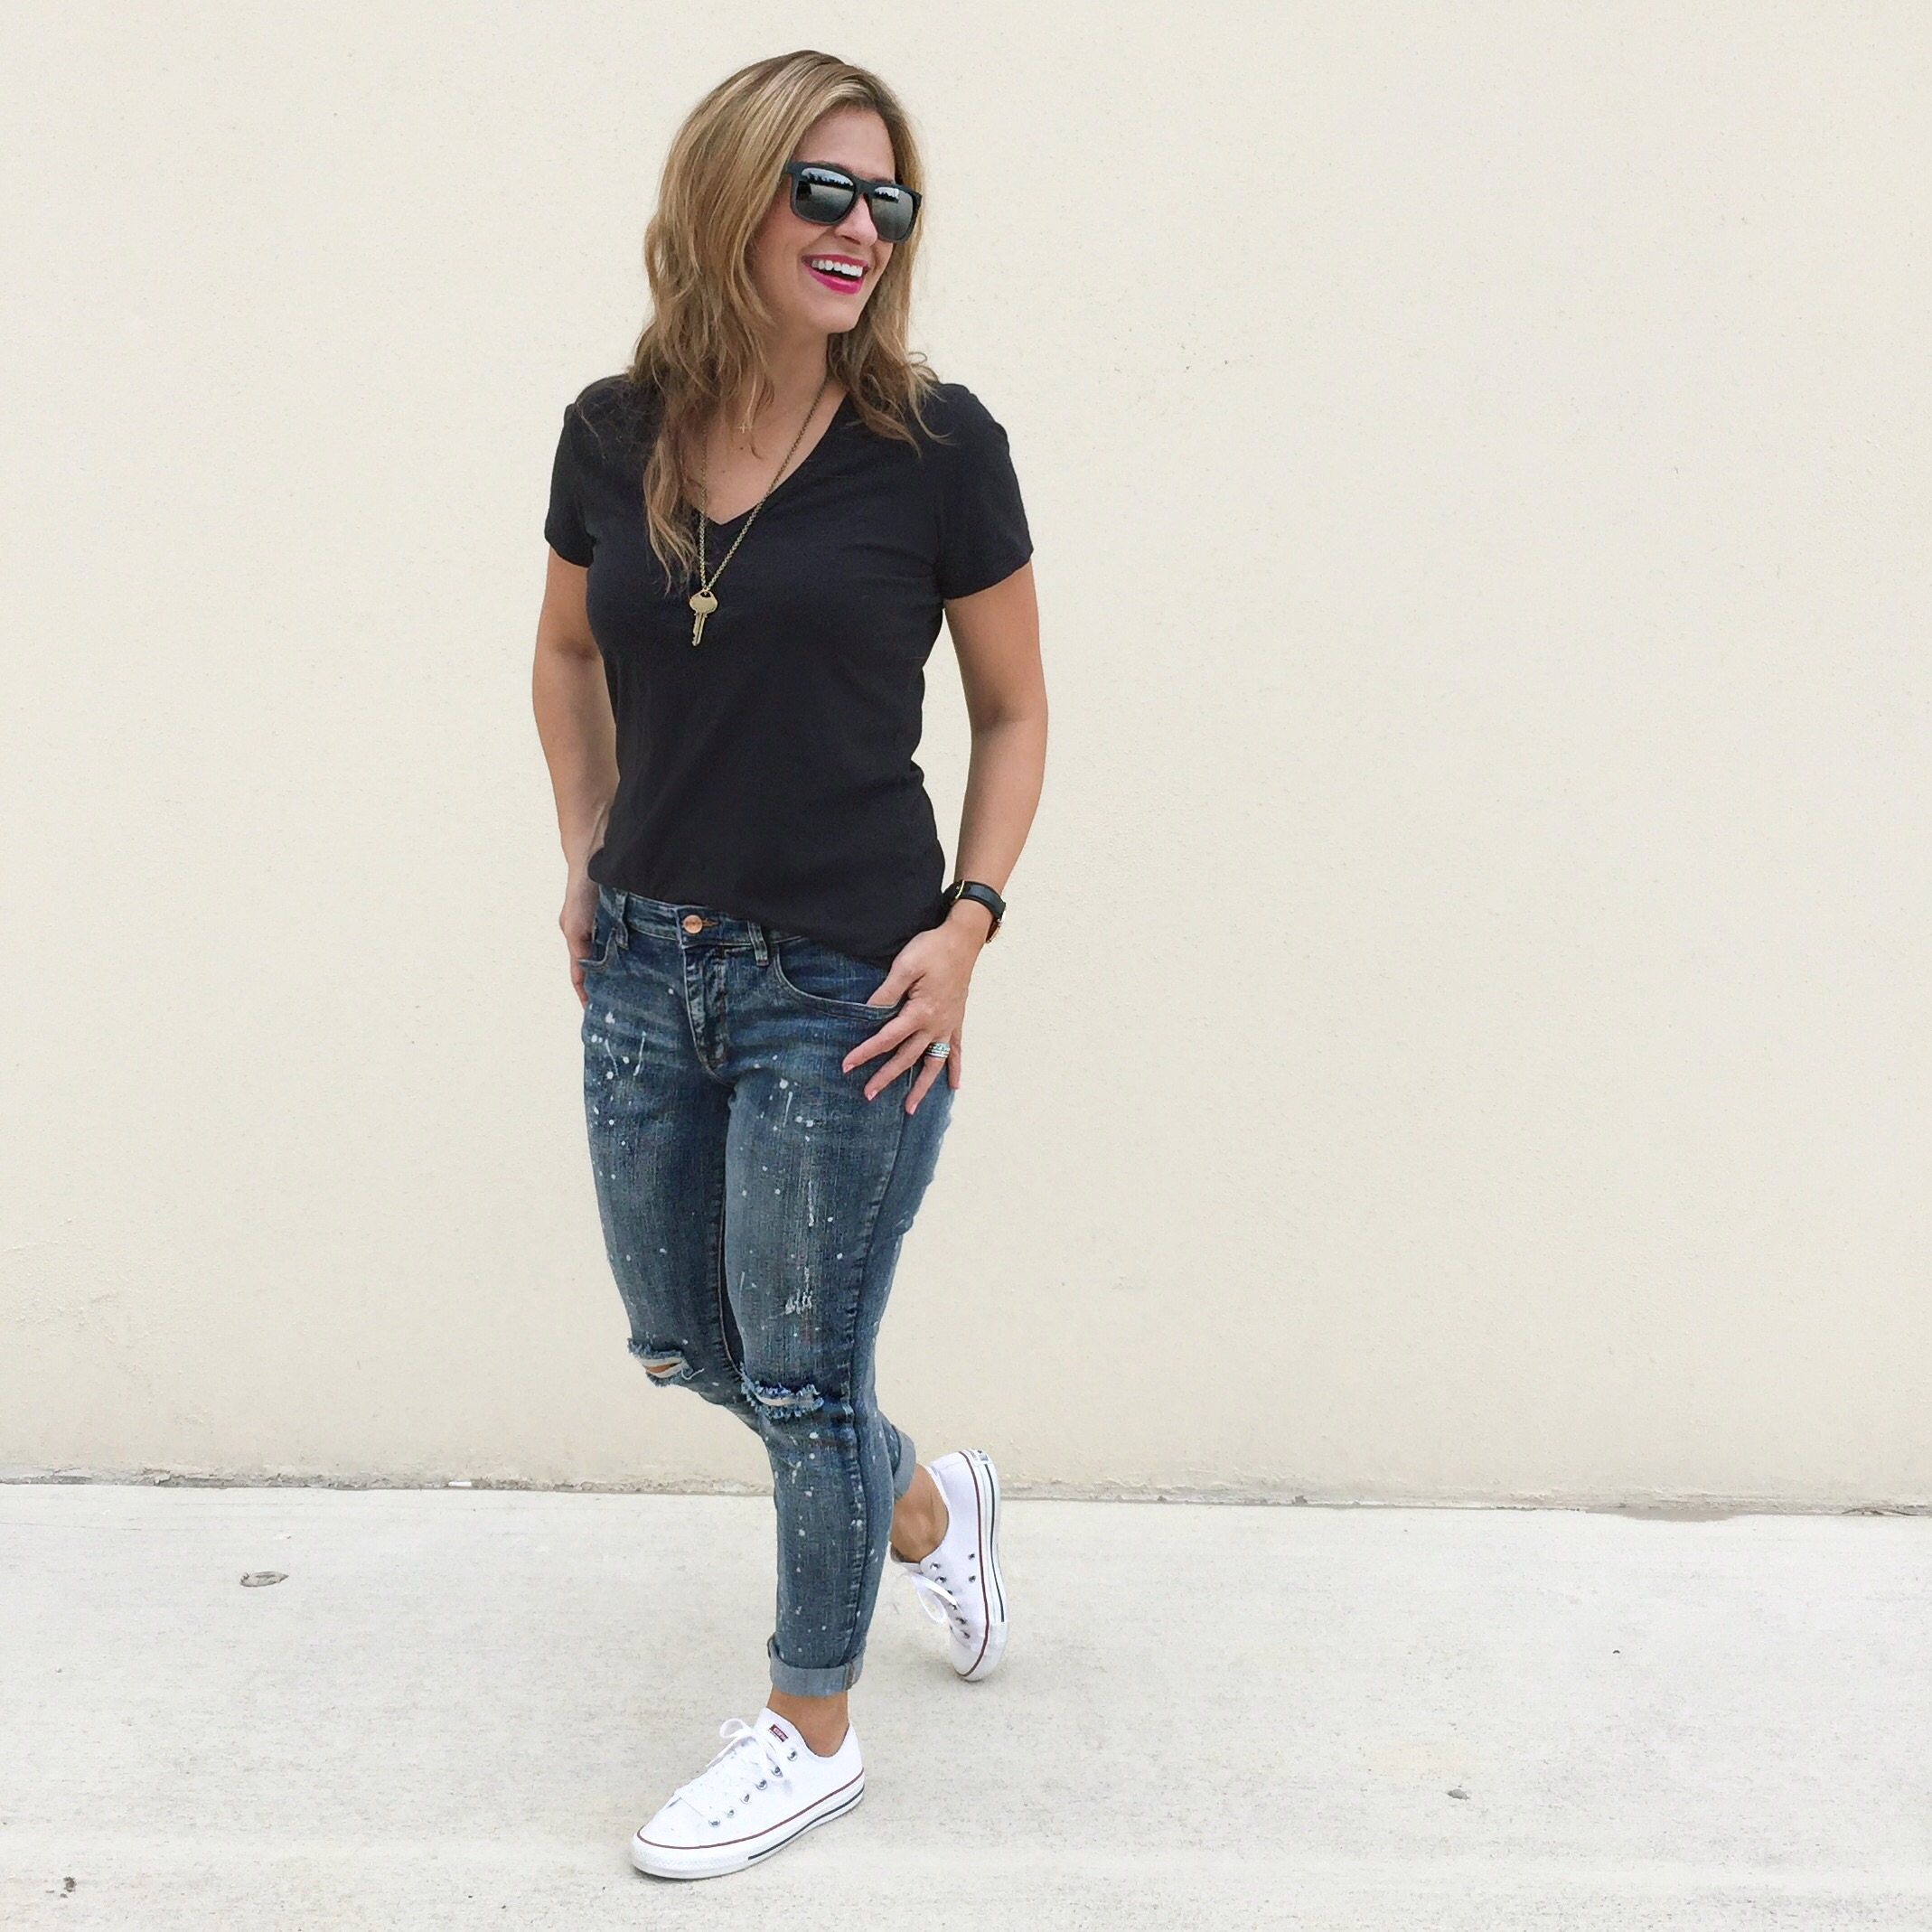 Tee:  Everlane  Jeans:  Target  Shoes:  Converse  Necklace:  The Giving Key  Sunglasses:  Ray-Ban